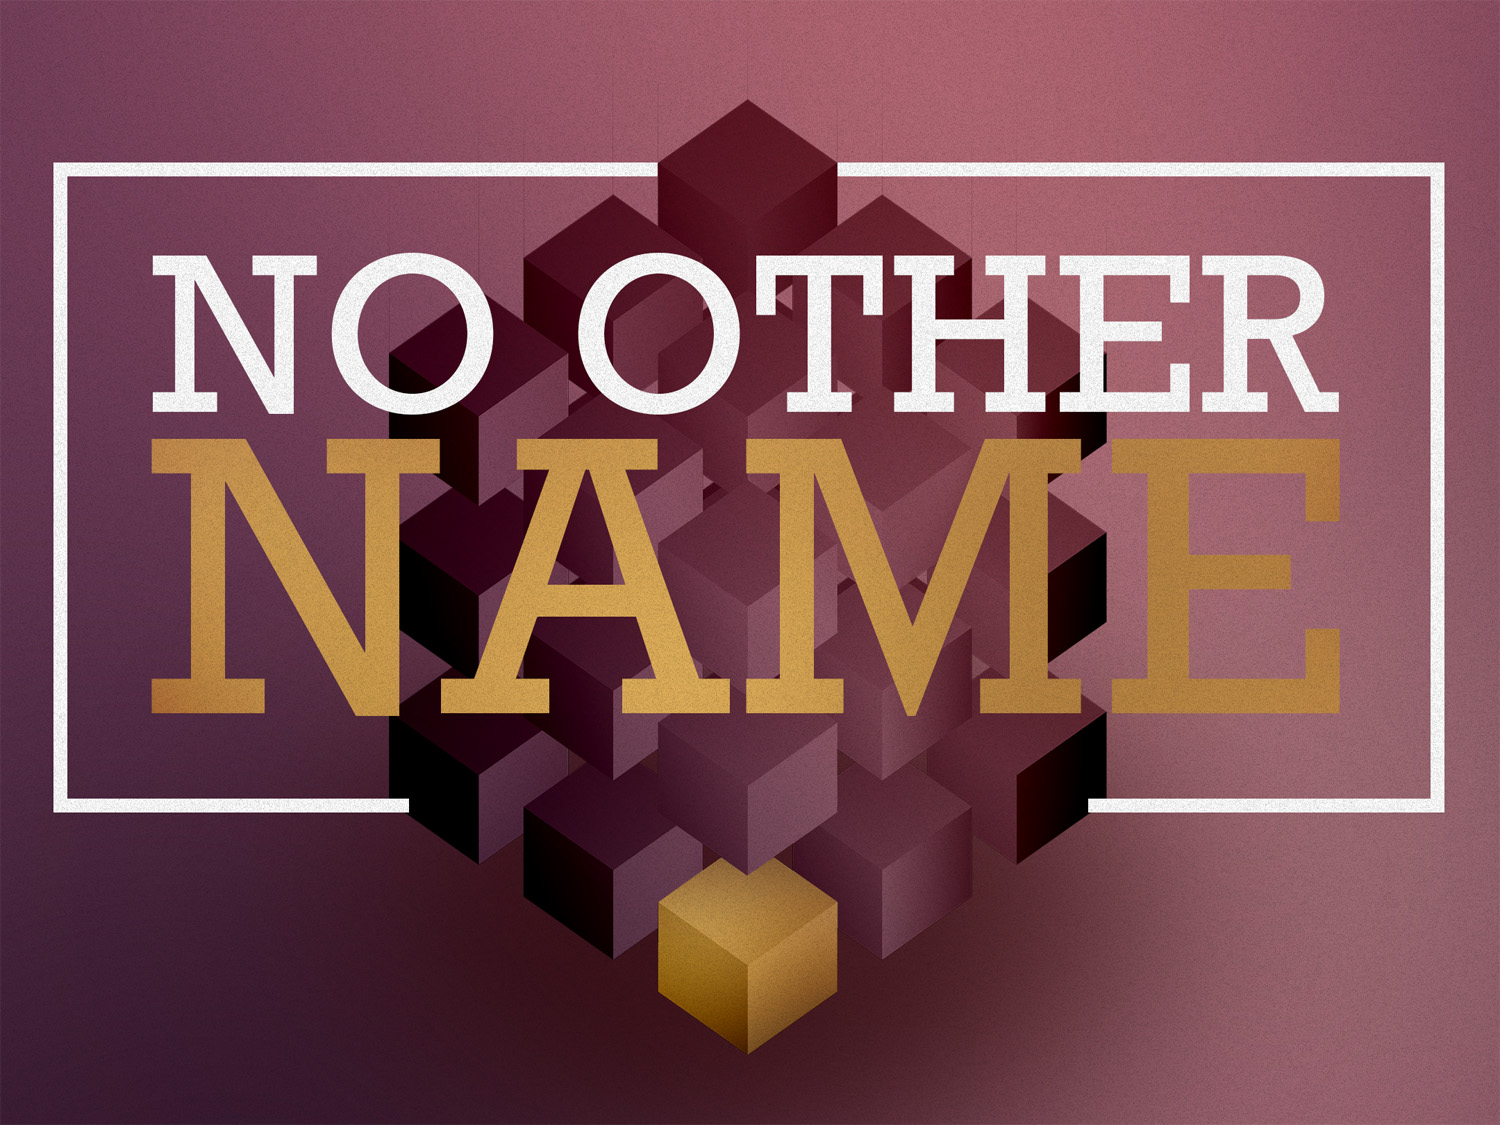 There's no other name under heaven by which we must be saved